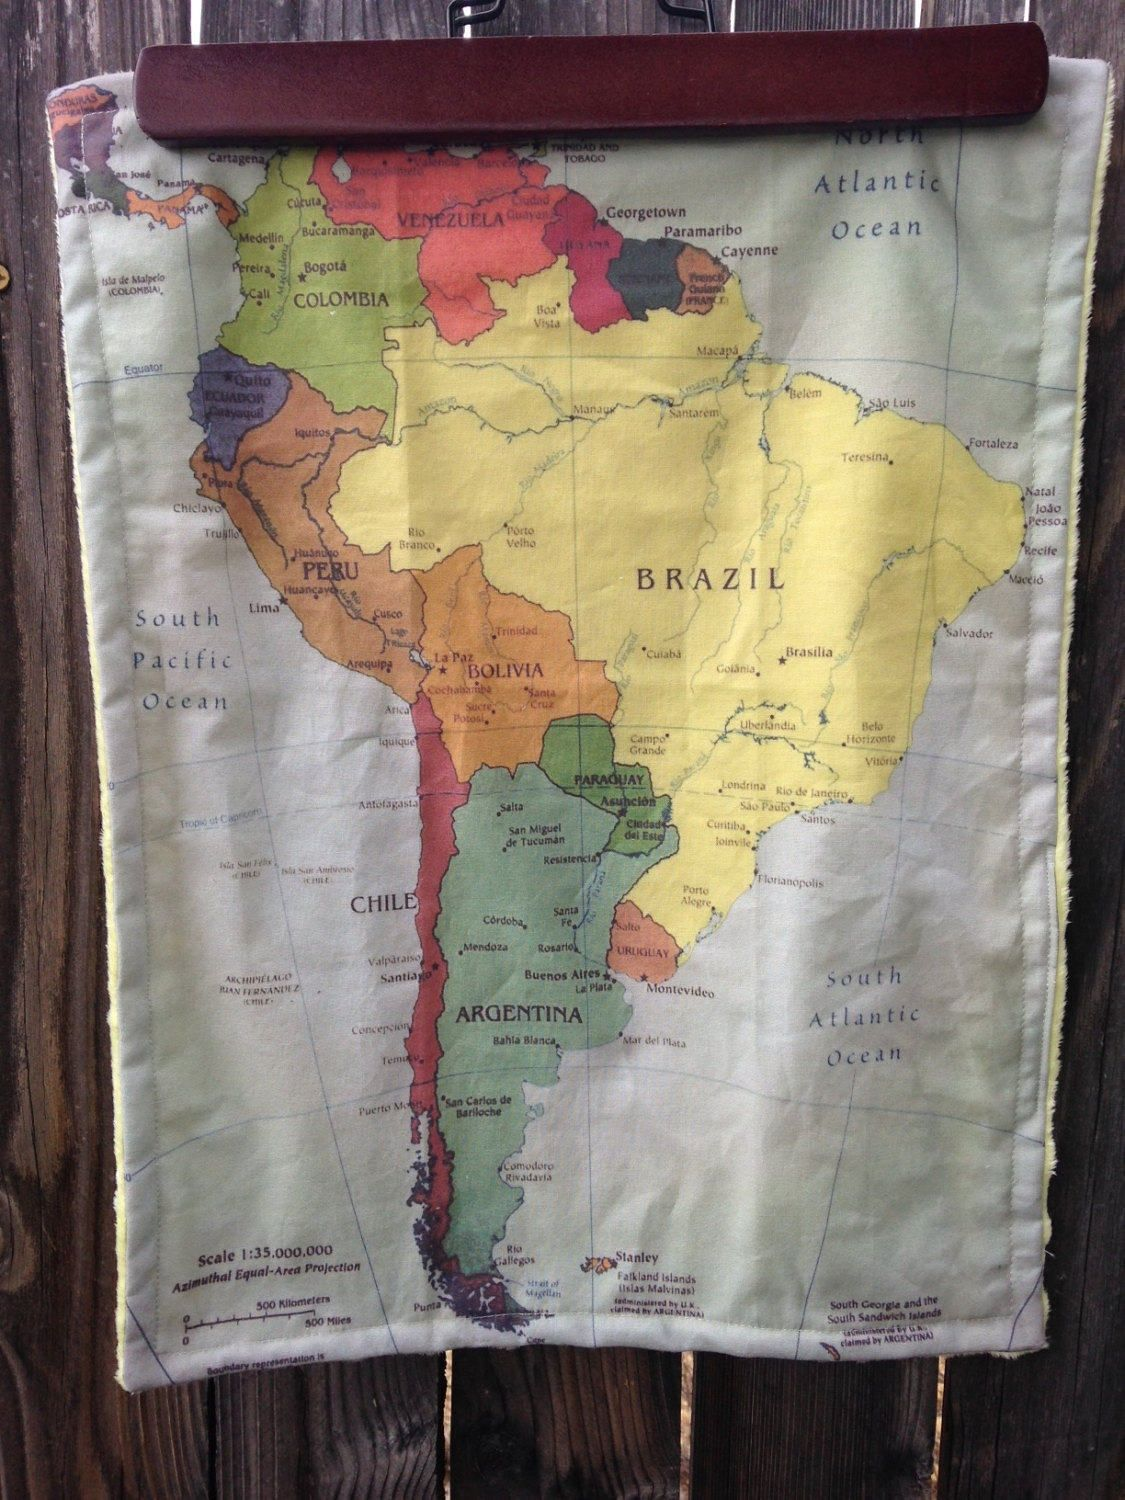 South america map baby minky security blanket small knit travel south america map baby minky security blanket small knit travel blanky lovie lovey gumiabroncs Images